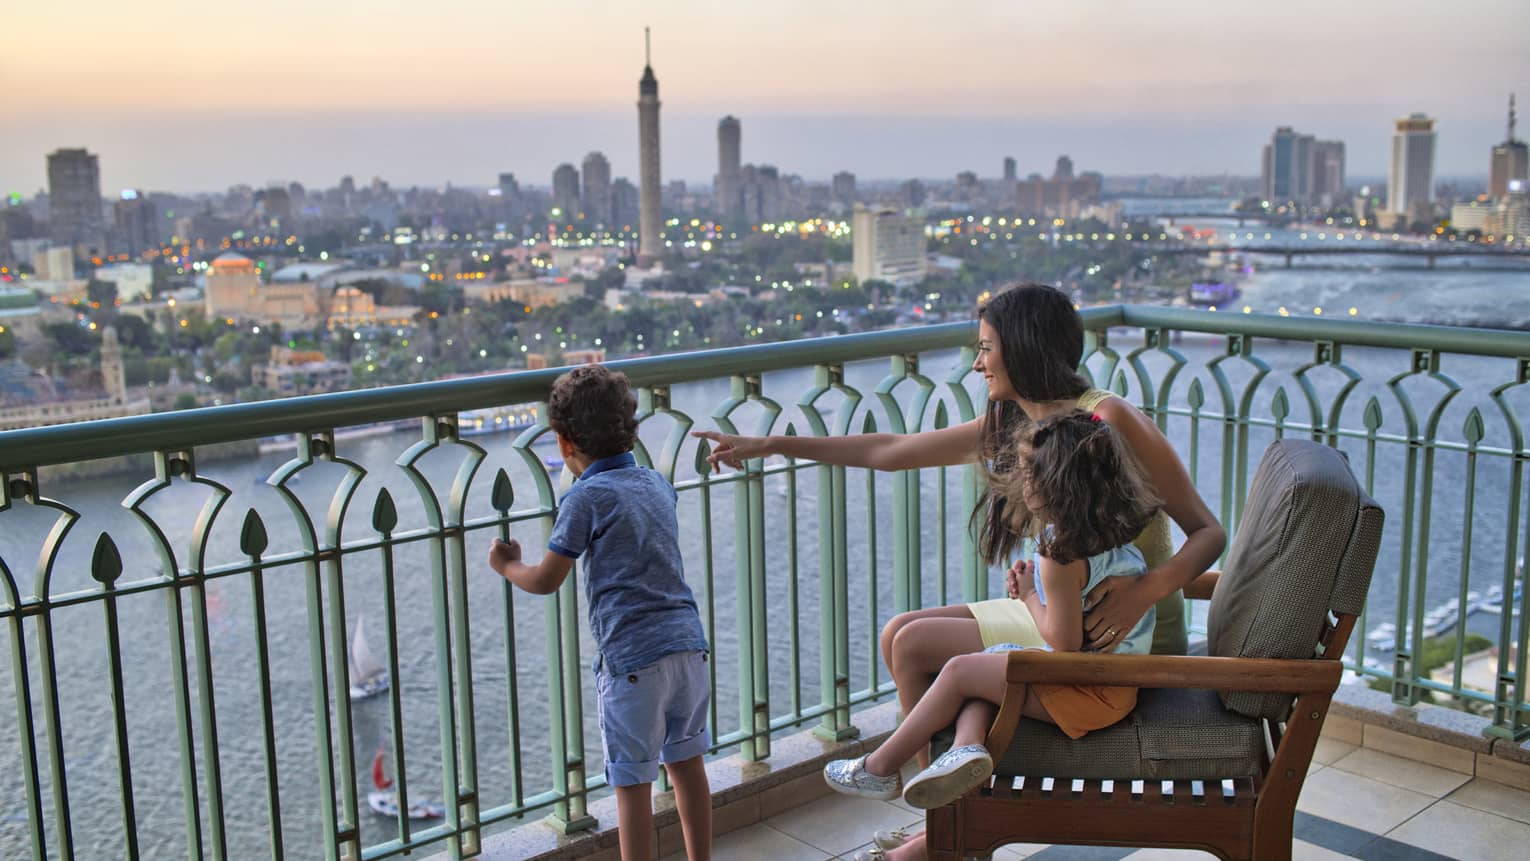 Woman seated with a young girl and beside a young boy standing, overlooking the Nile River and Cairo